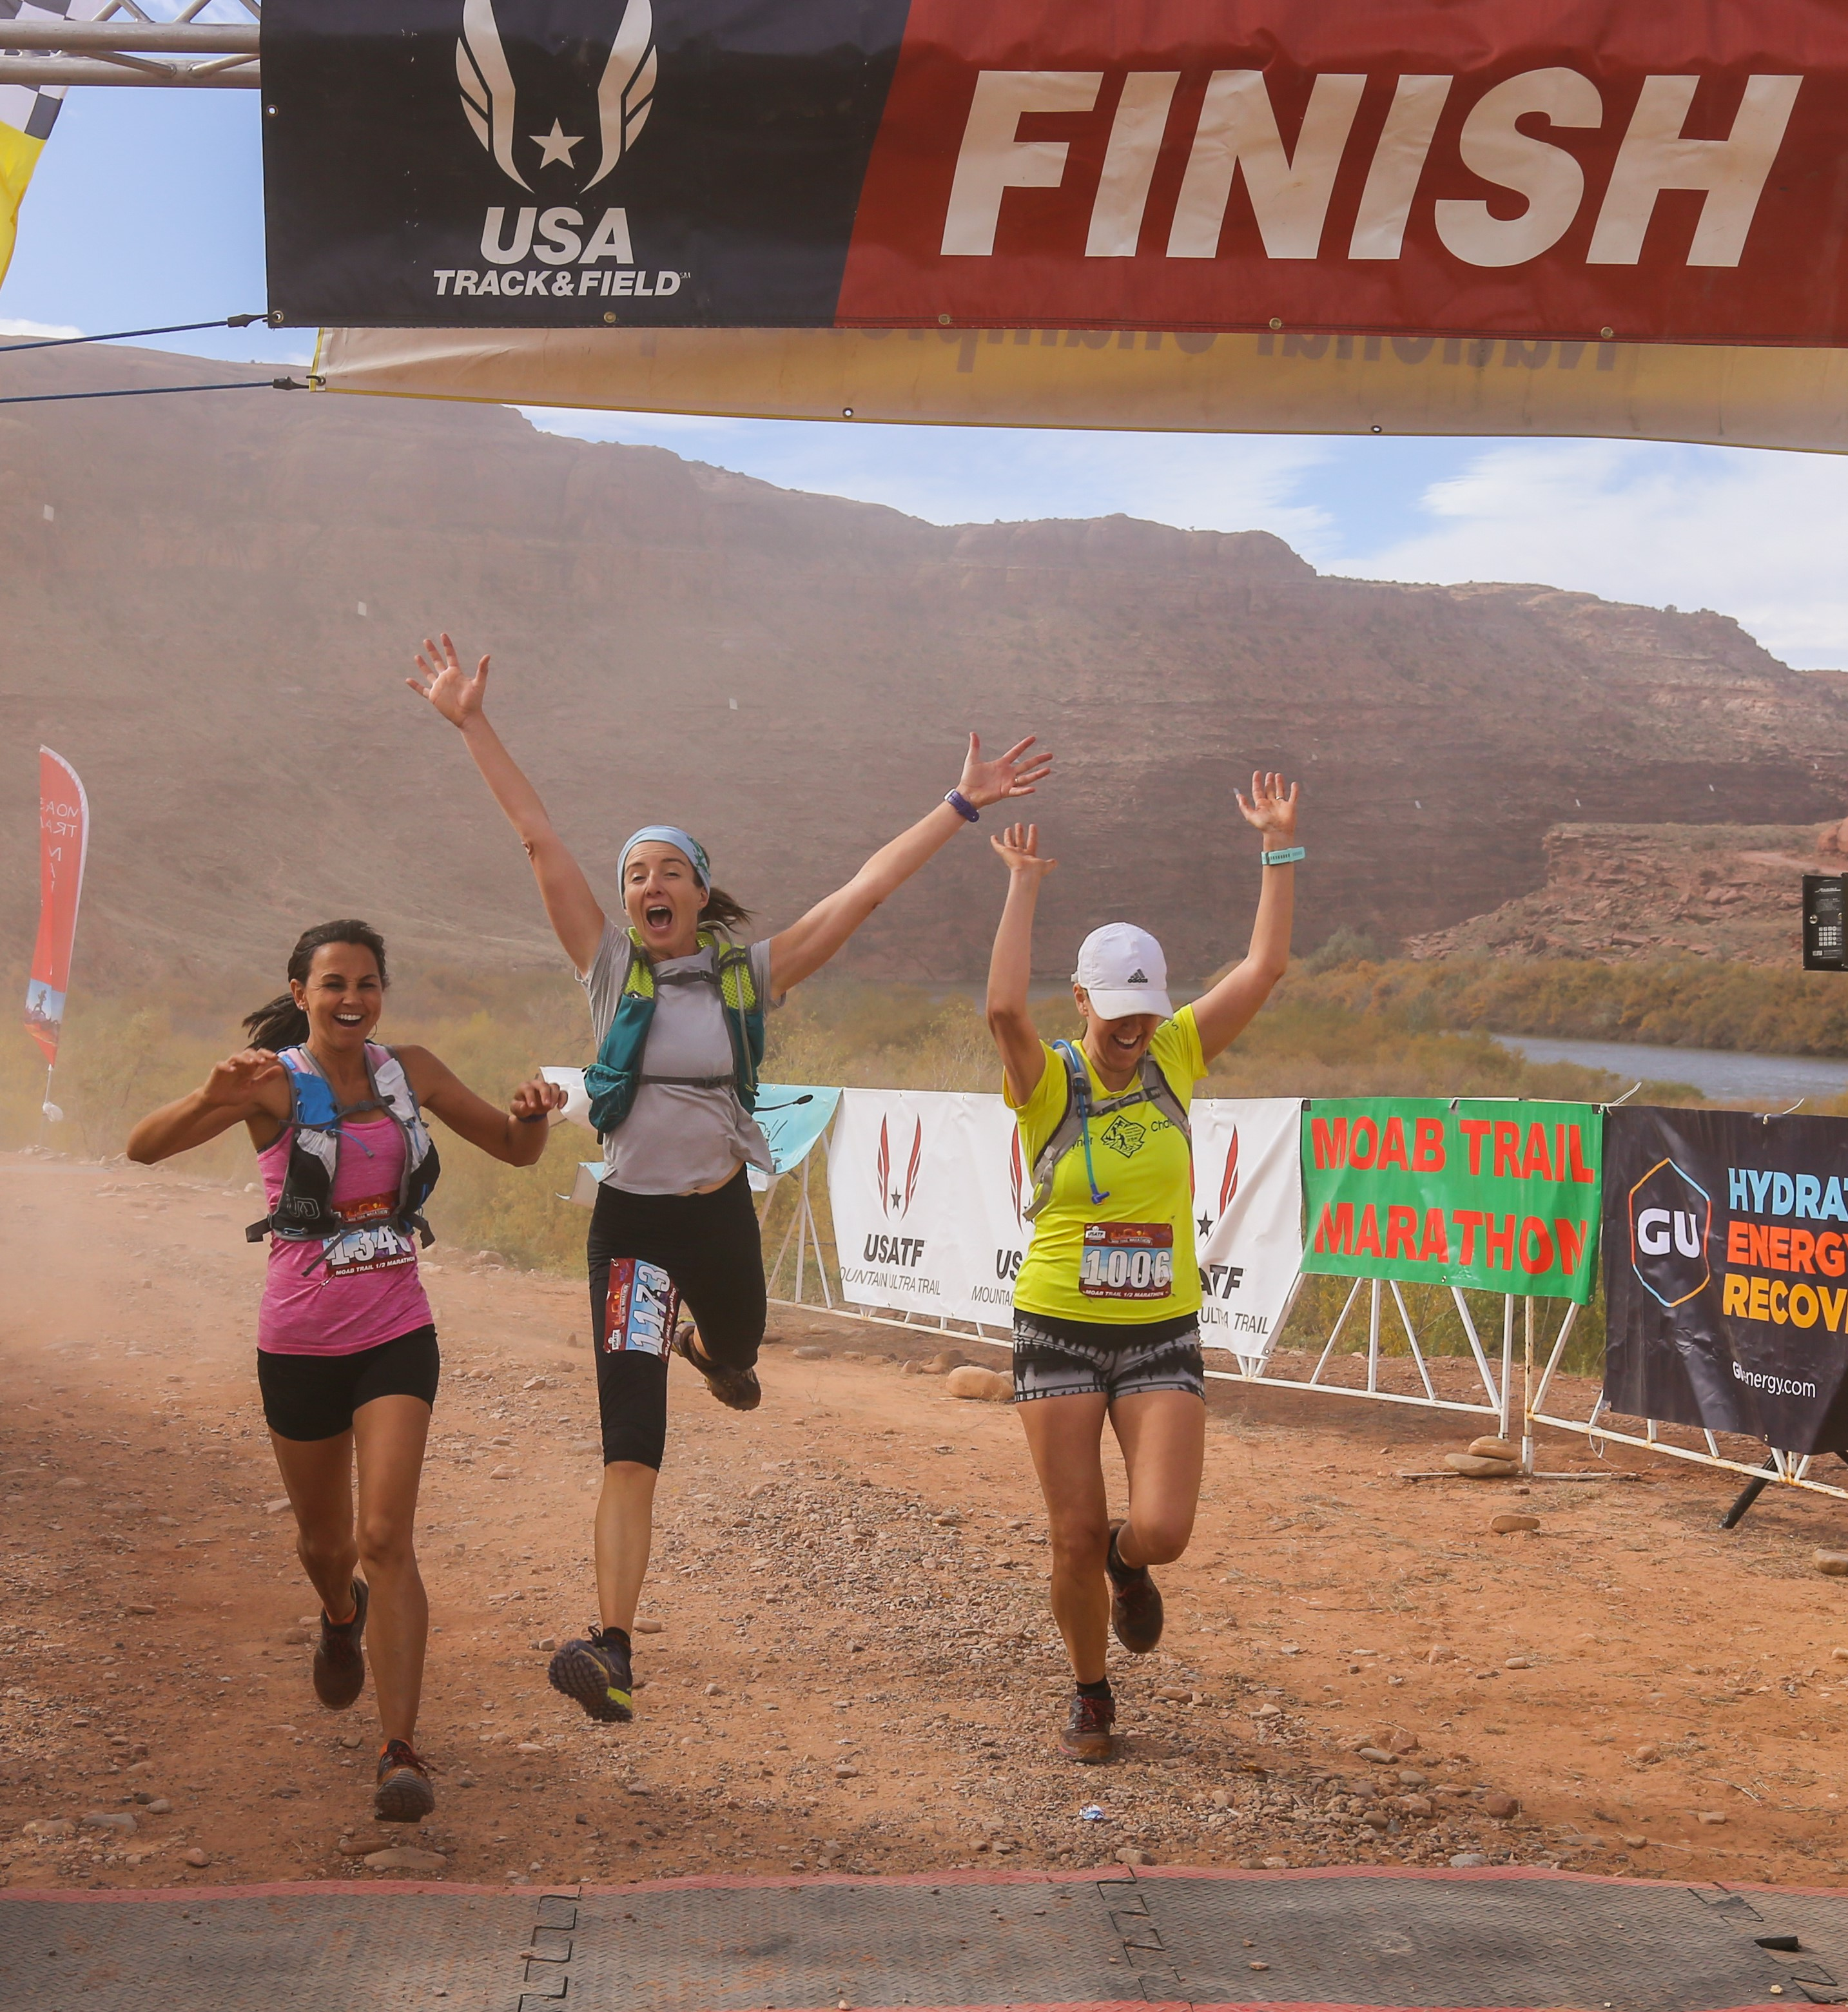 hydra trail run